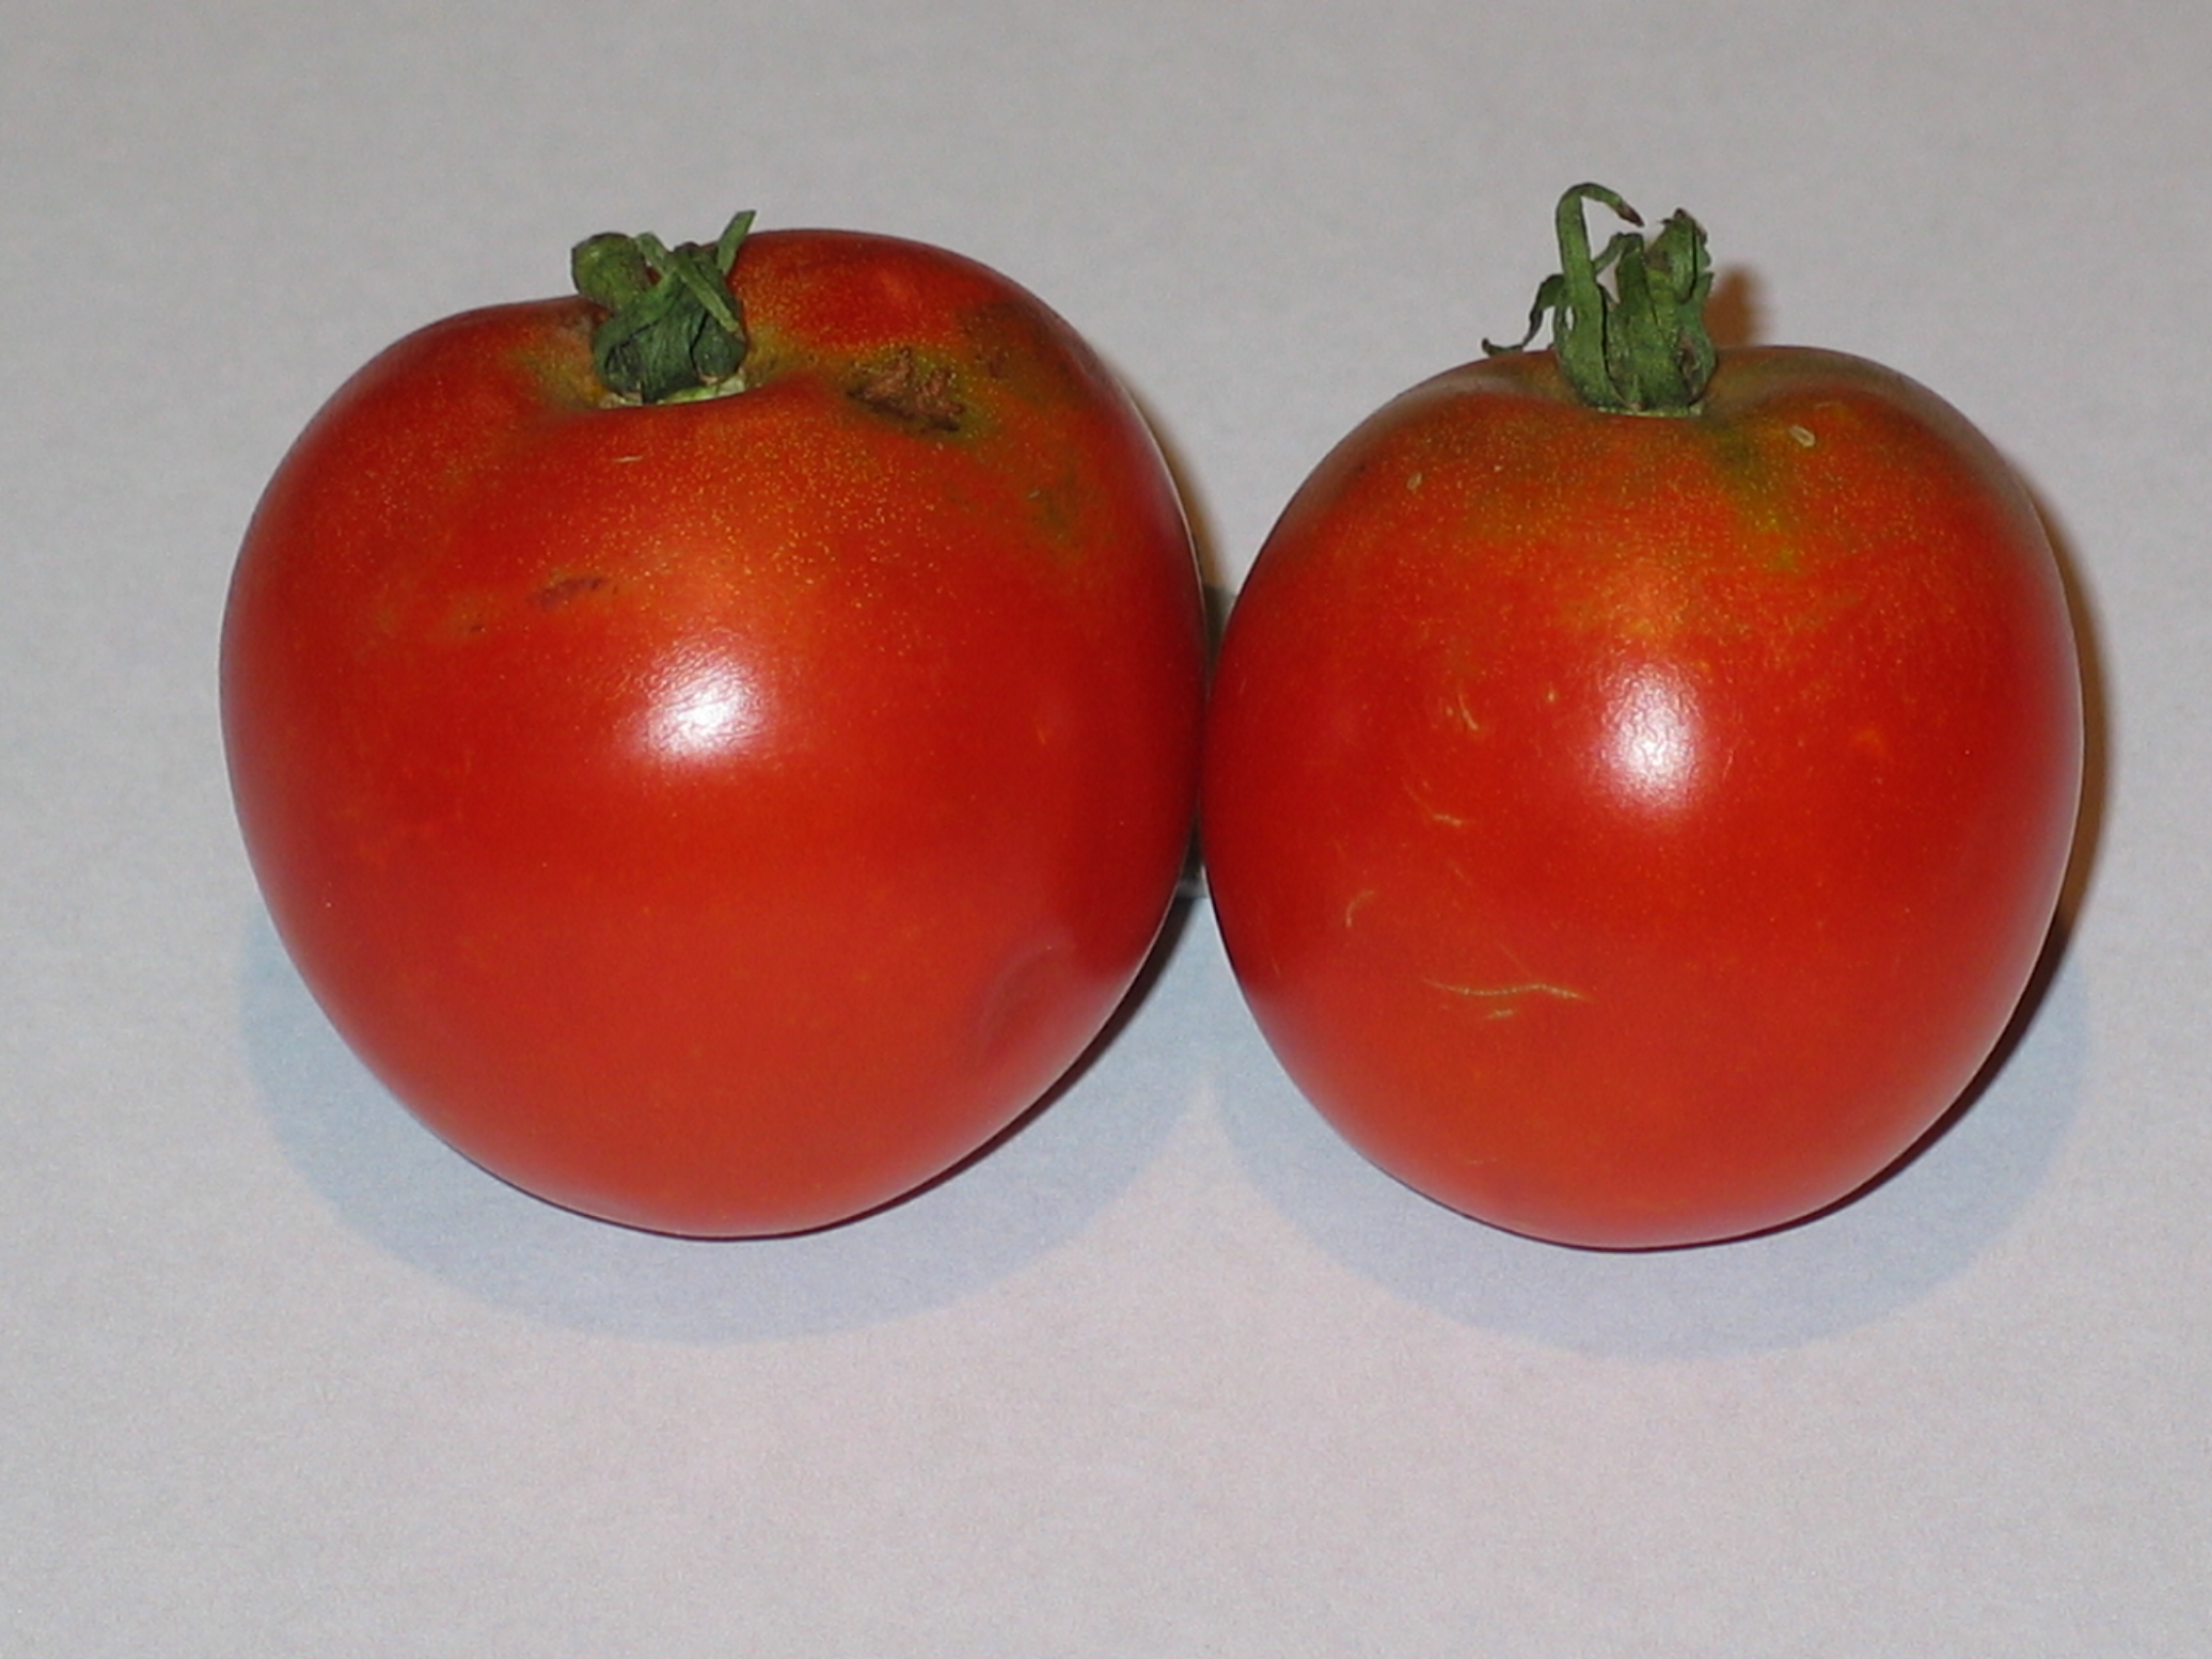 image of tomatoes that the plant on the left later produced